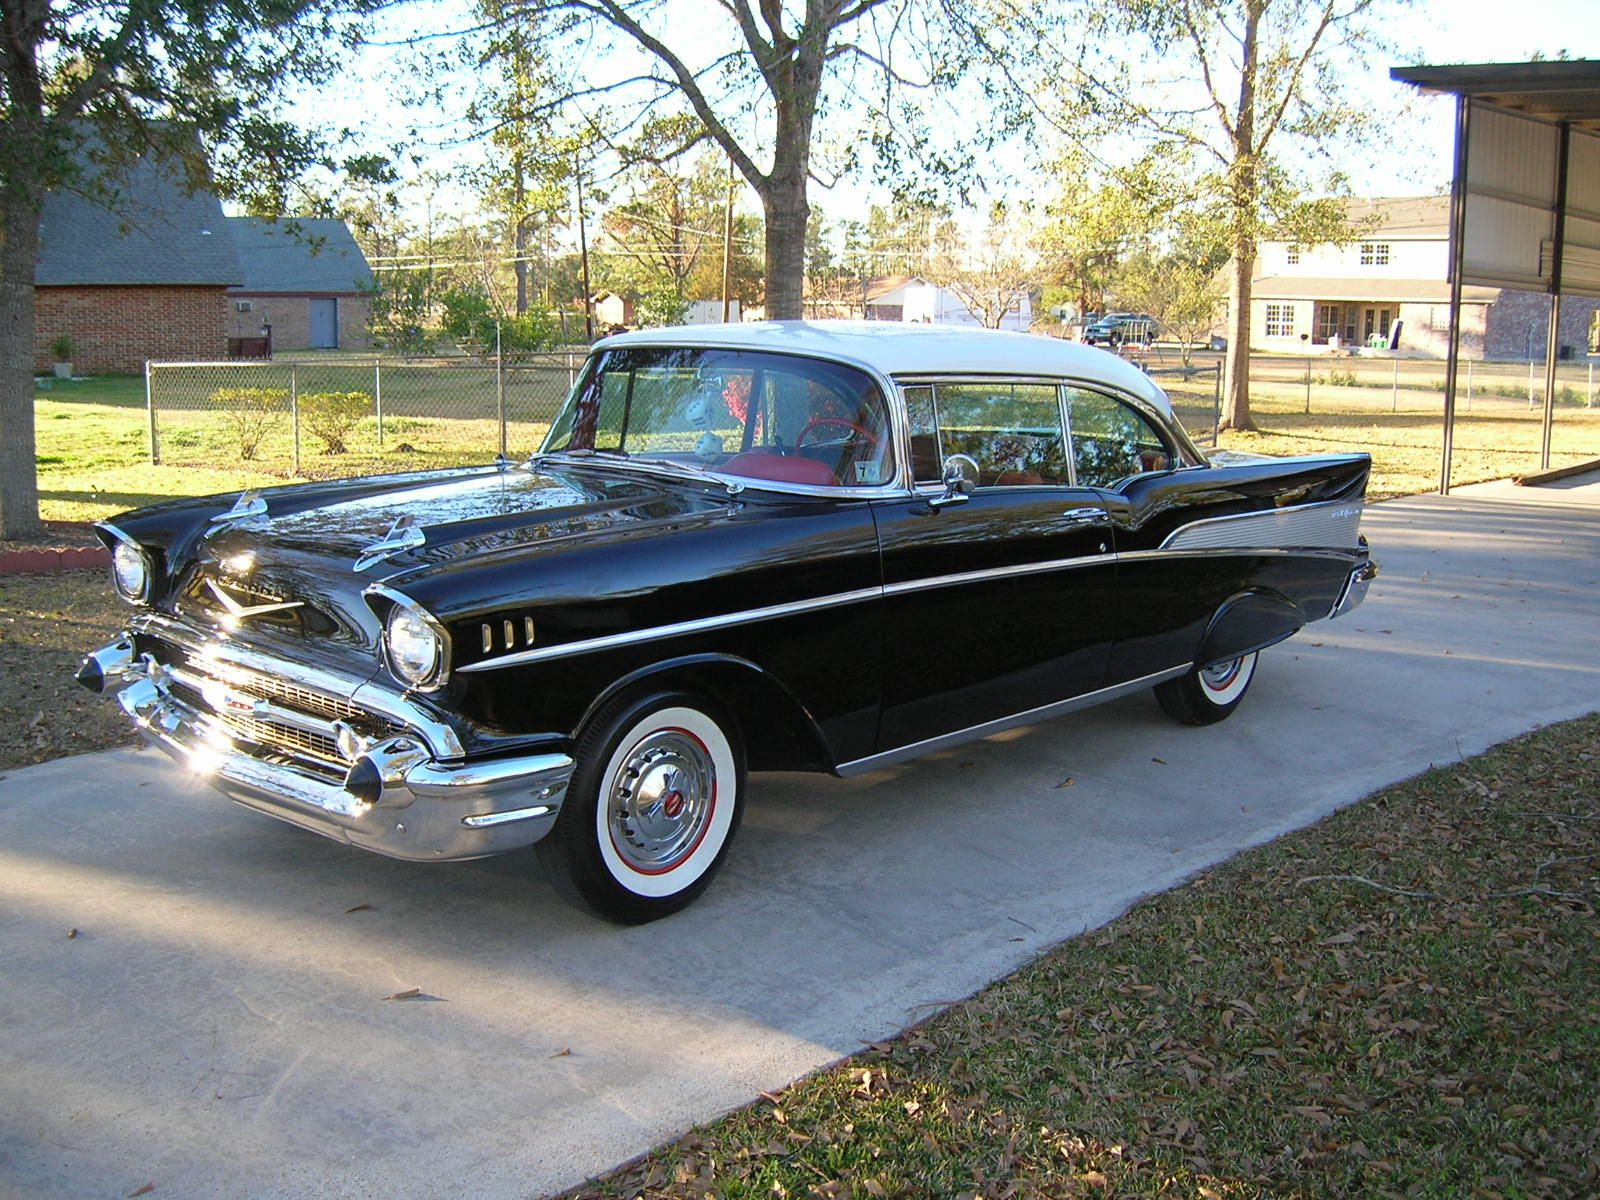 1956 chevrolet bel air for sale classic car liquidators - 1956 Chevrolet Bel Air Black 1957 Chevy 1957 Chevroletdream Carsclassic